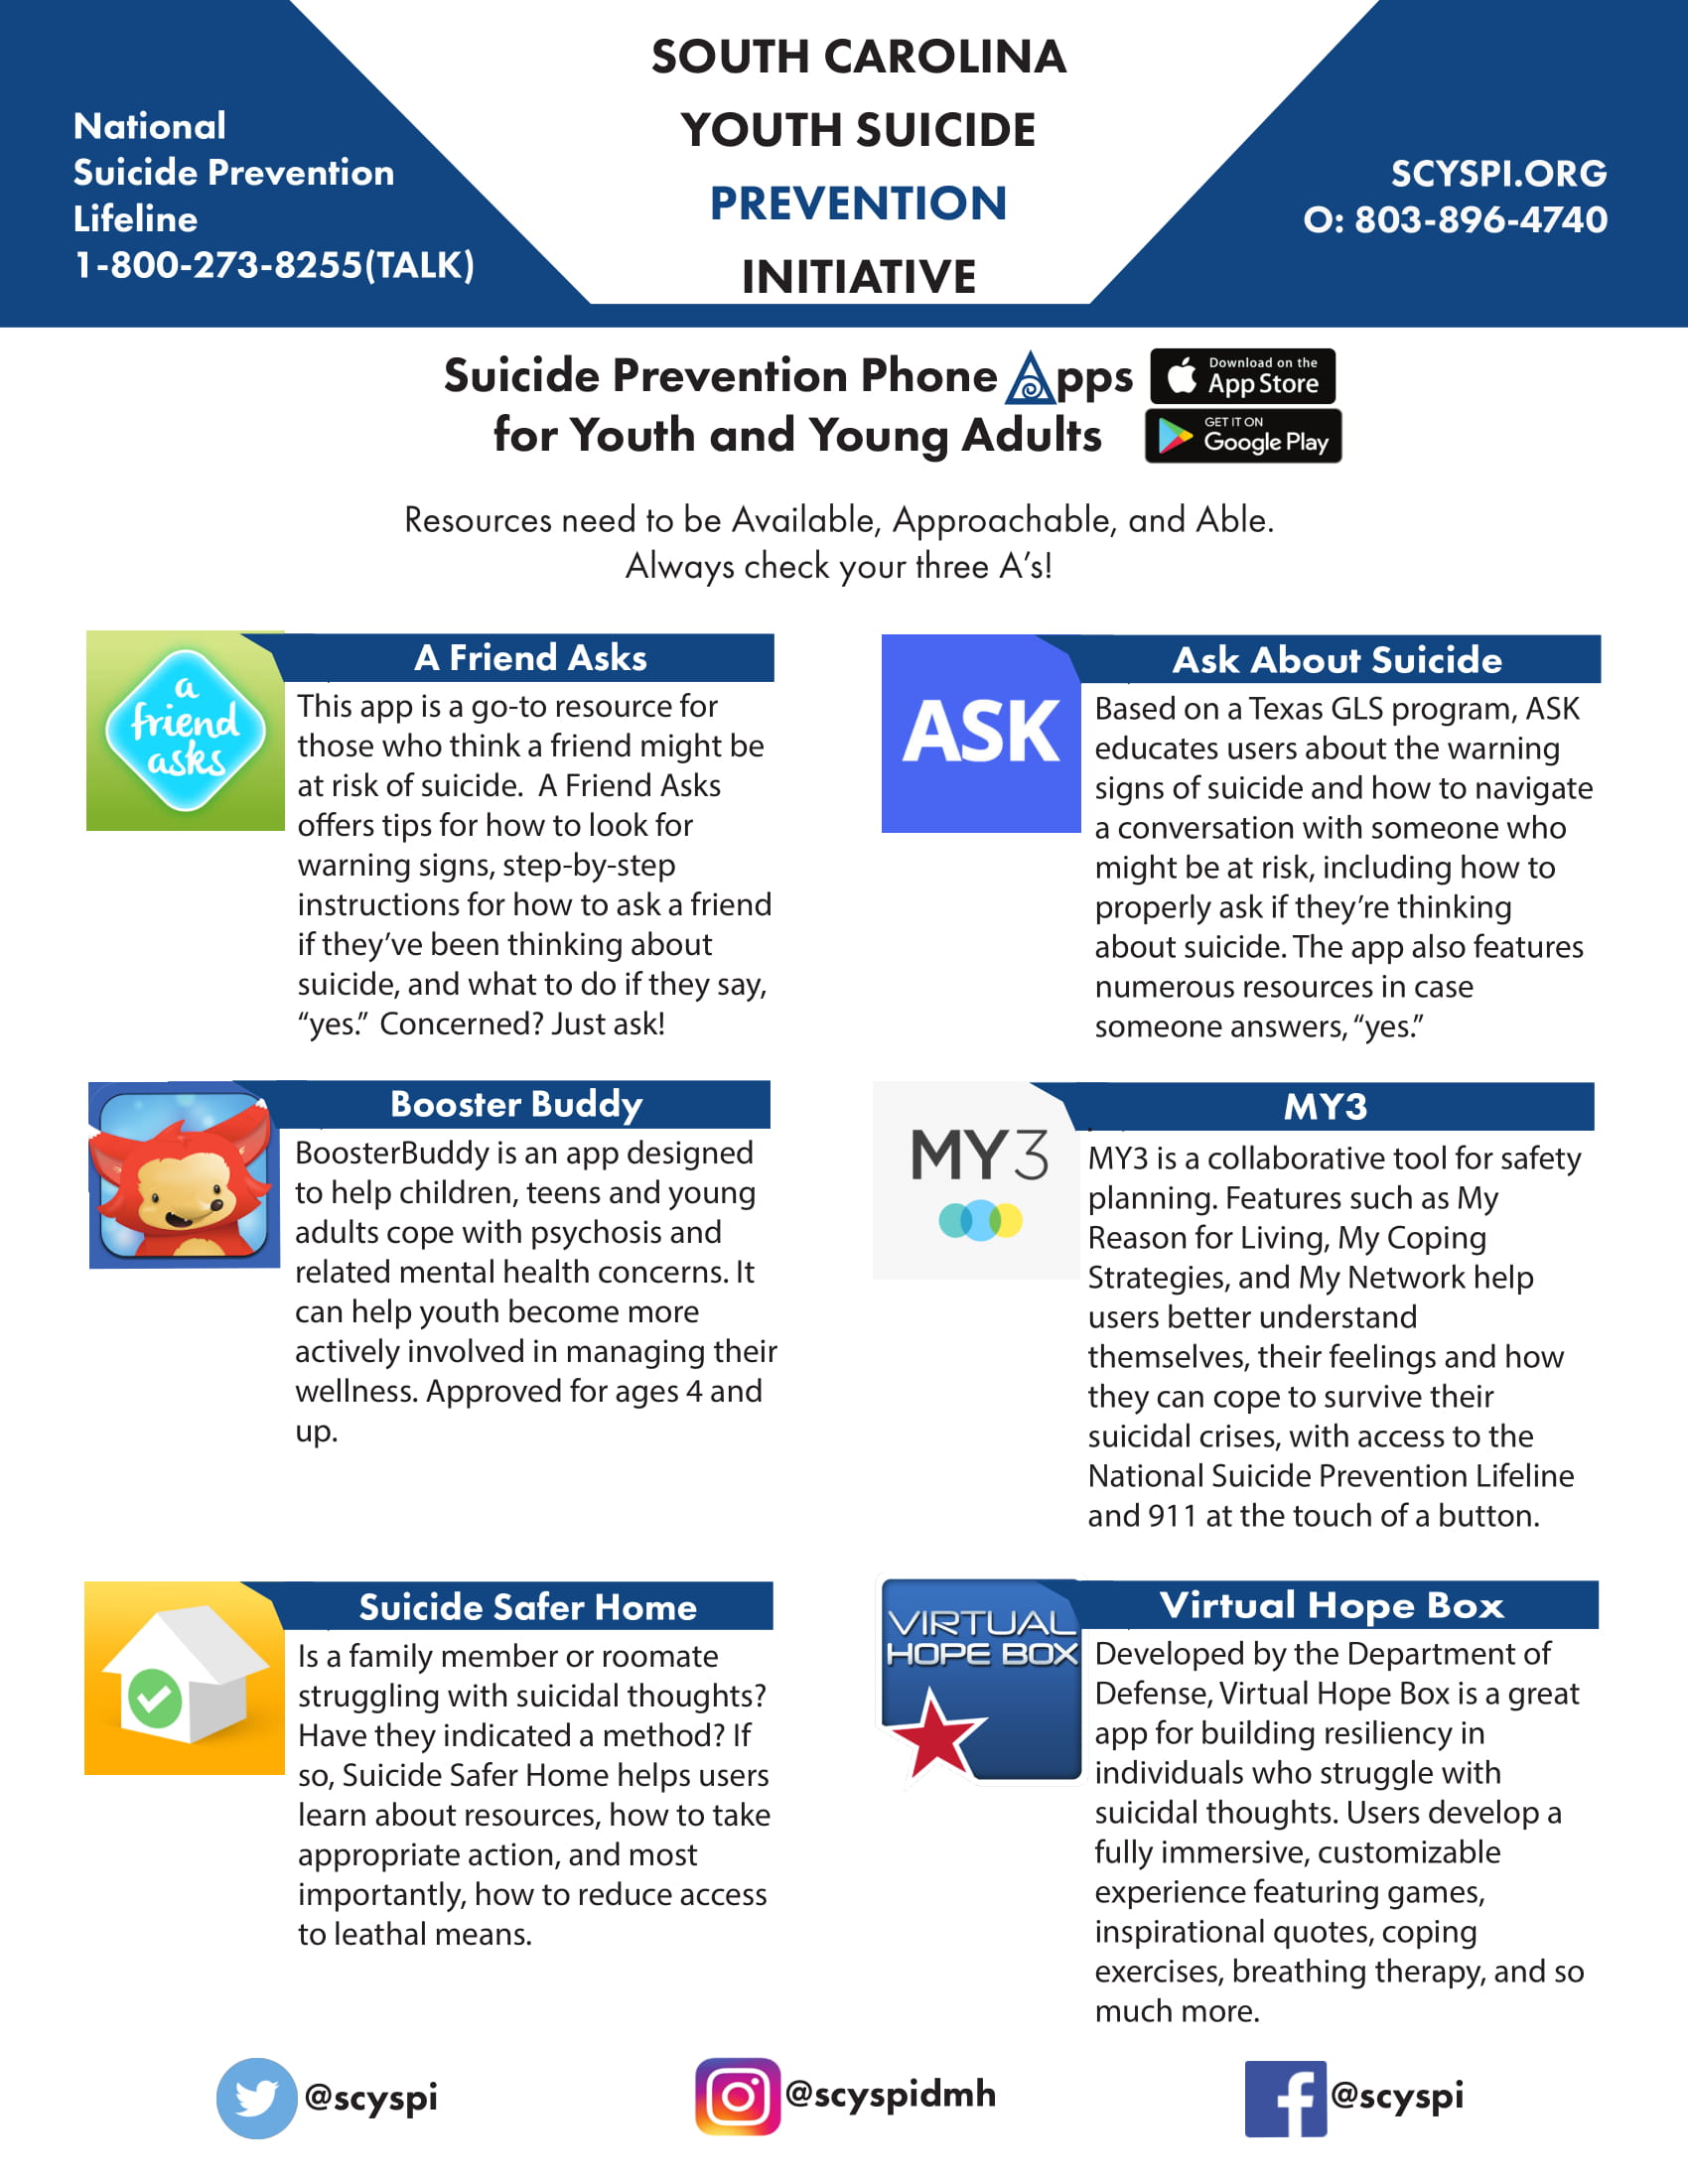 Suicide Prevention Phone Apps for Youth